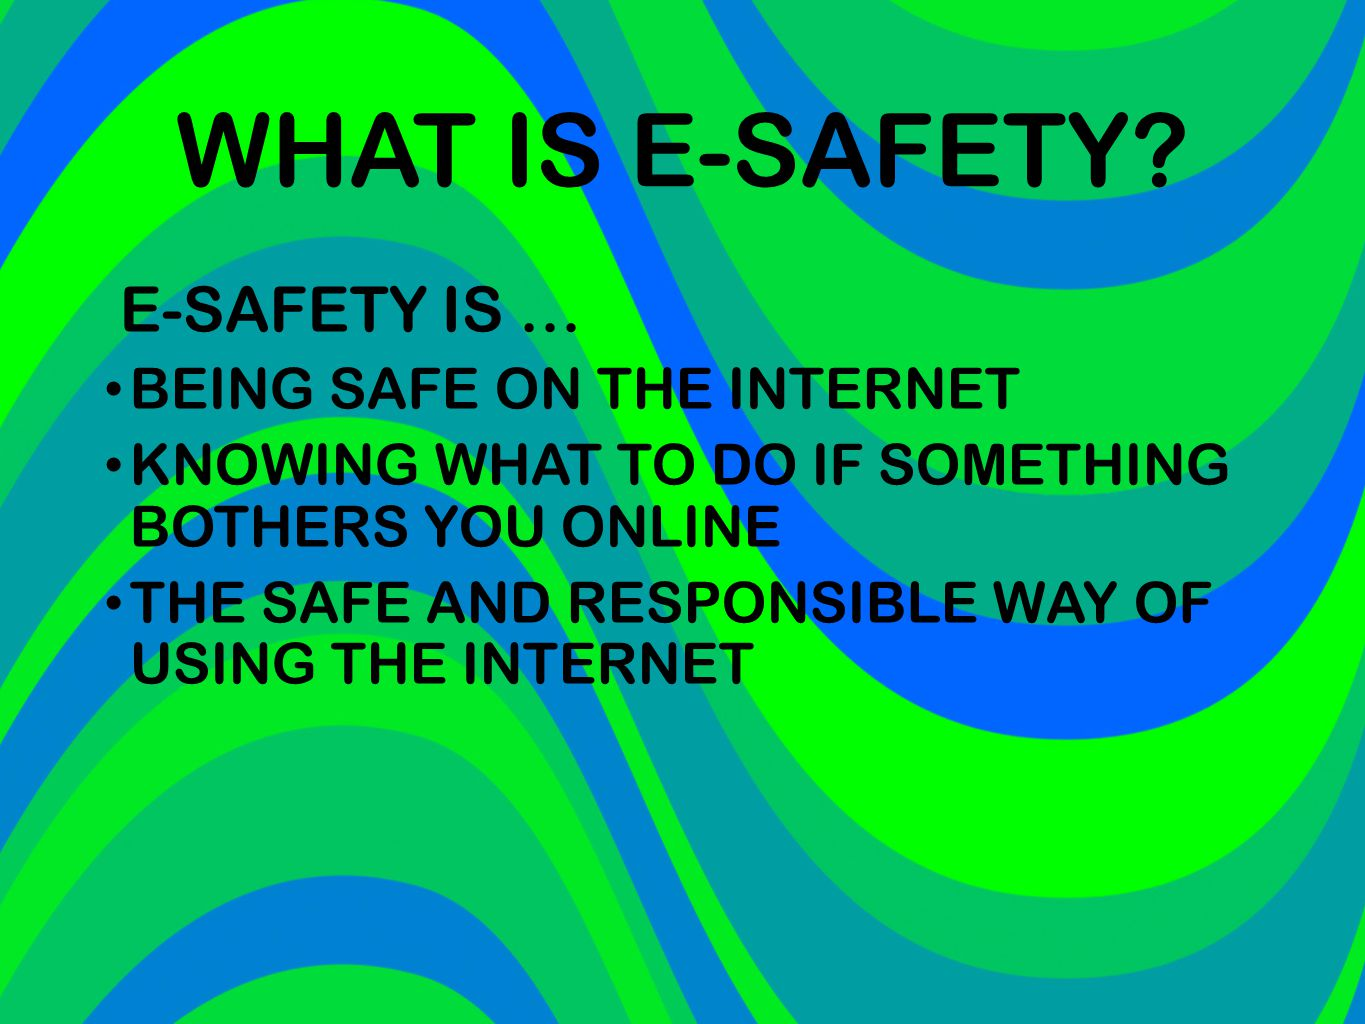 WHAT IS E-SAFETY? E-SAFETY IS … BEING SAFE ON THE INTERNET KNOWING WHAT TO DO IF SOMETHING BOTHERS YOU ONLINE THE SAFE AND RESPONSIBLE WAY OF USING TH